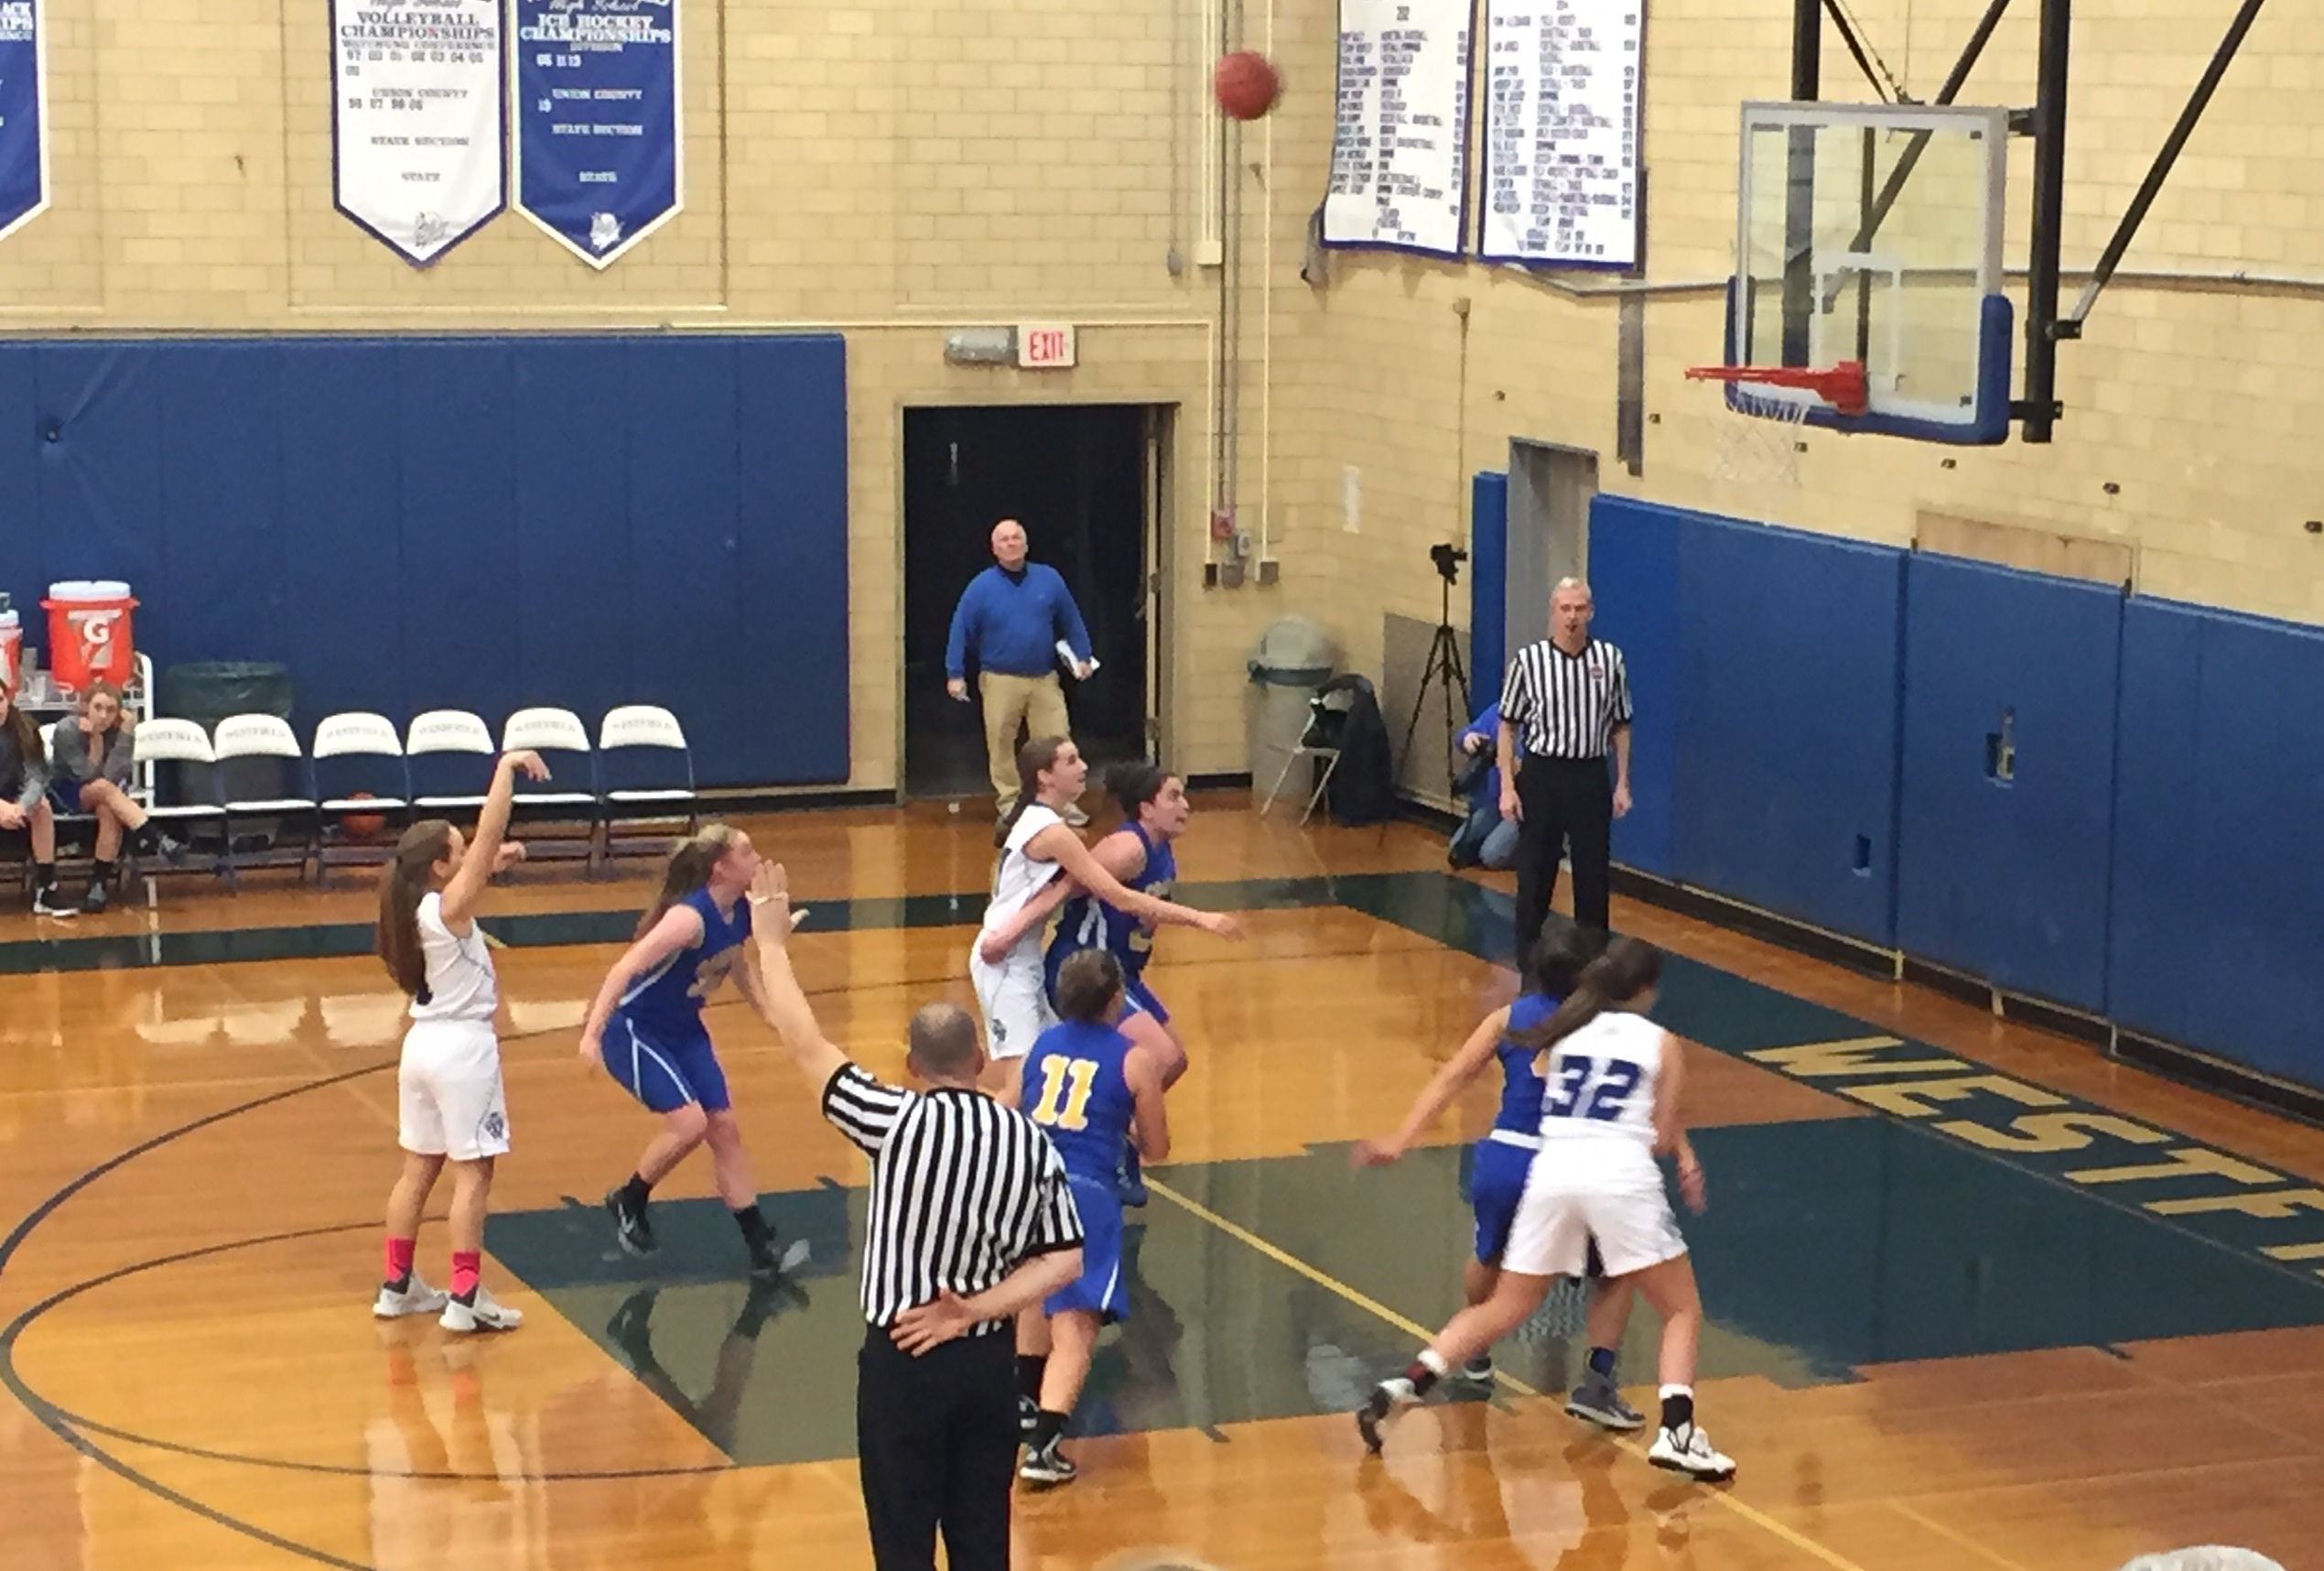 7dbad0d7de70c5f66002_girls_basketball.jpg